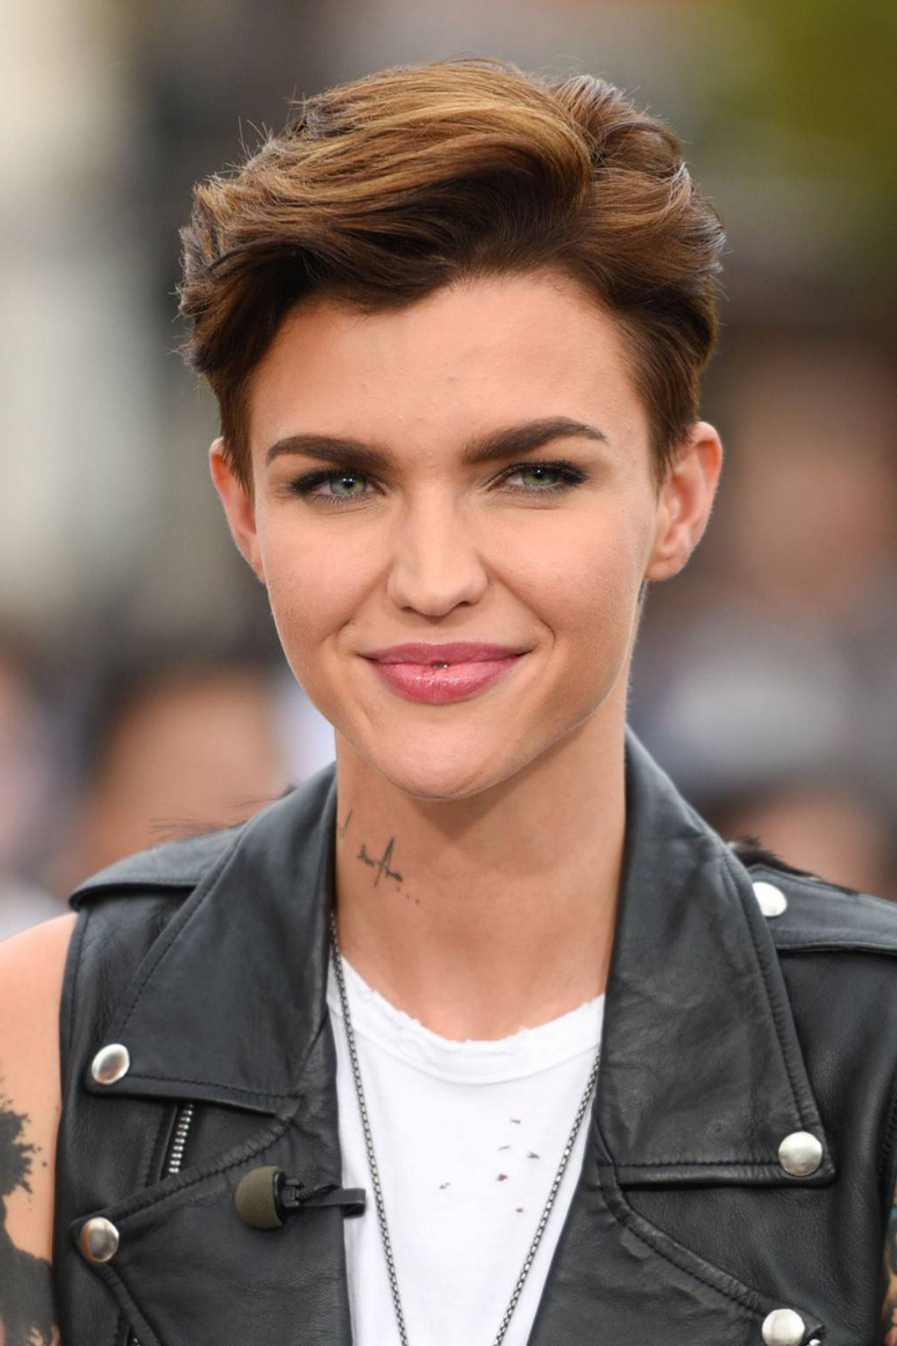 Ruby Rose Hairstyles | Best Hairstyles And Haircuts For Women And Men Pertaining To Ruby Rose Short Hairstyles (View 14 of 25)